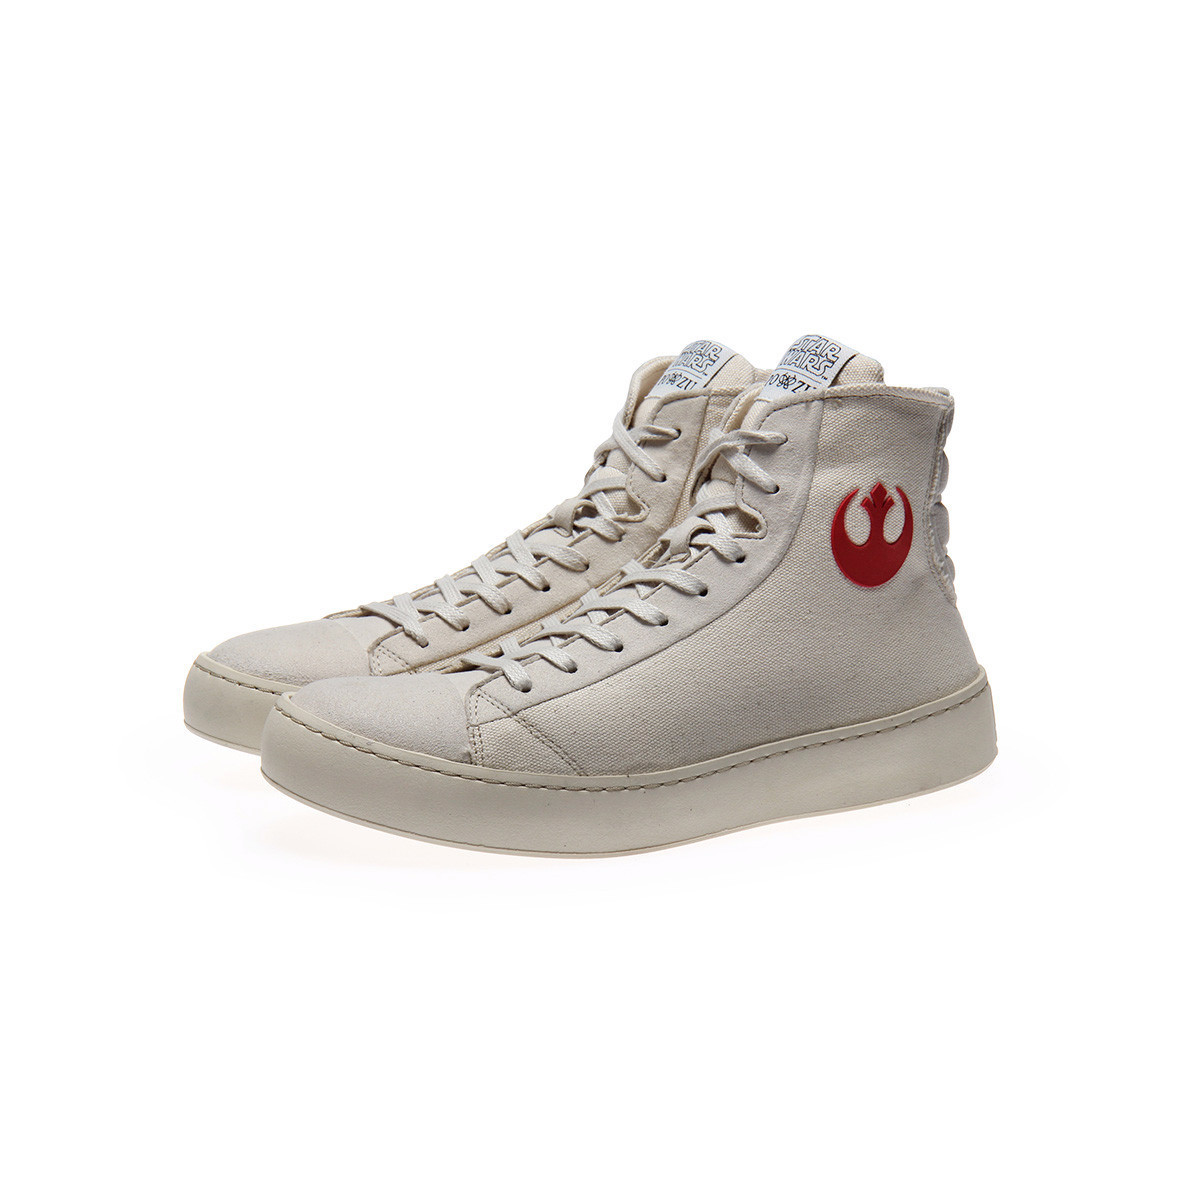 Po-Zu x Star Wars women's The Force Awakens Resistance sneakers (off white version)